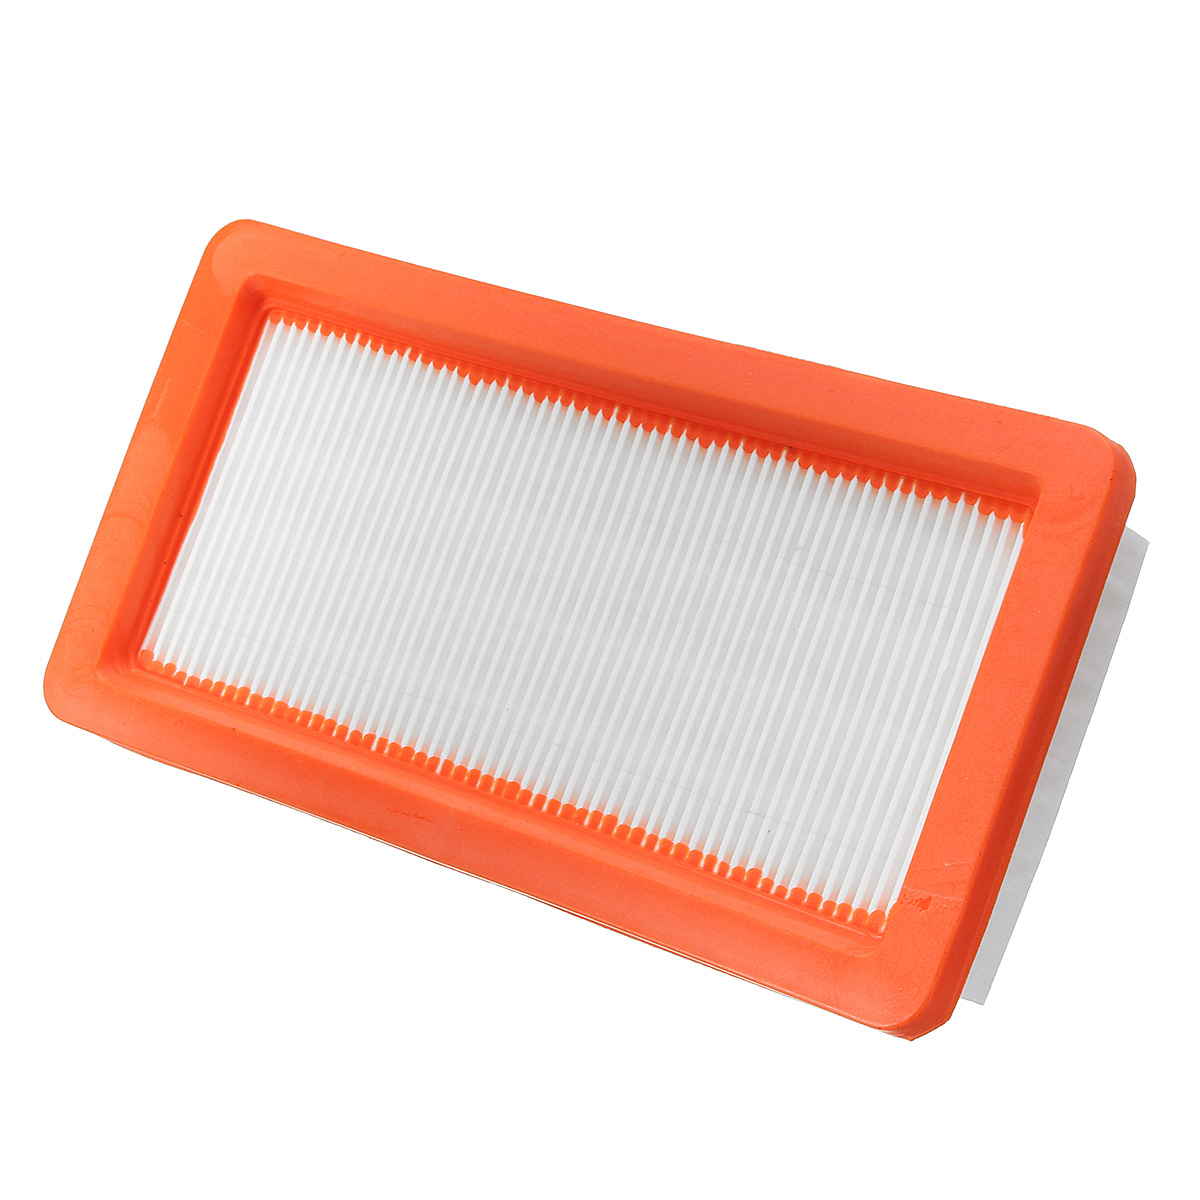 Filter Replacement Filter Cleaner Part For Karcher DS5500 DS5600 DS5800 Vacuum Cleaner